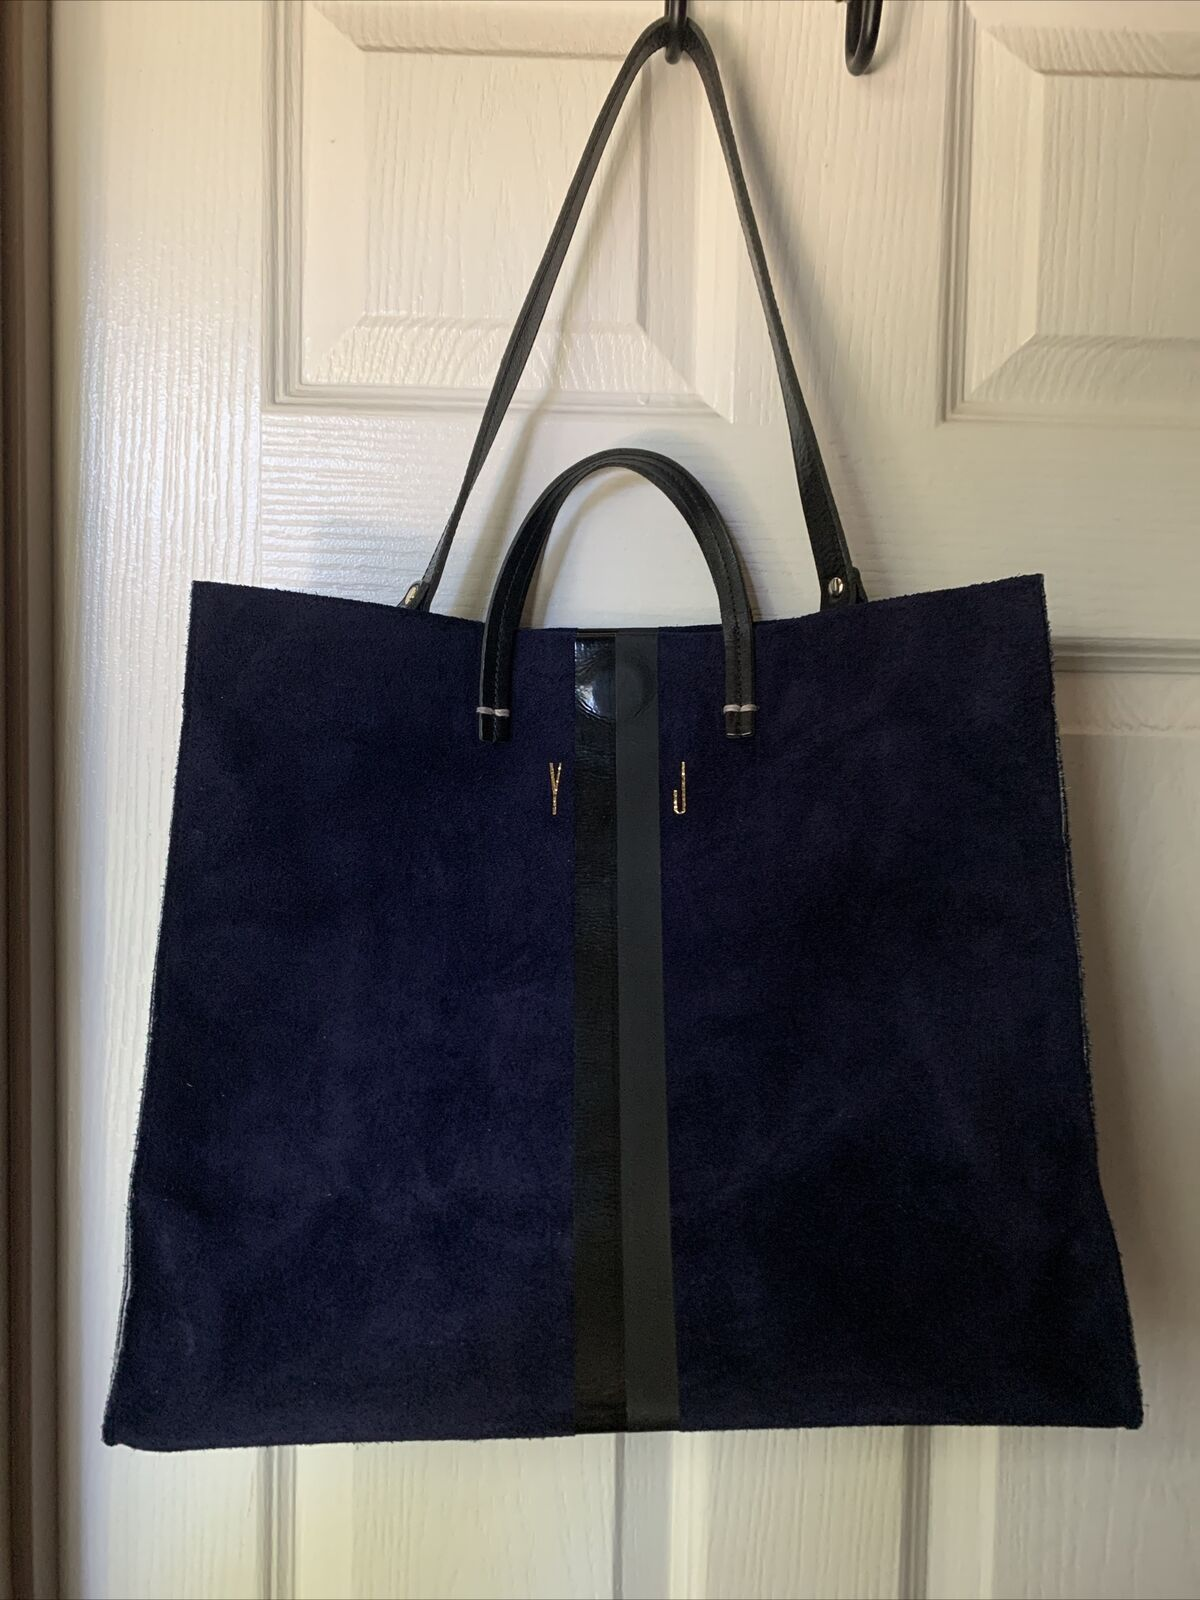 Claire V Simple Blue Suede Tote - image 8